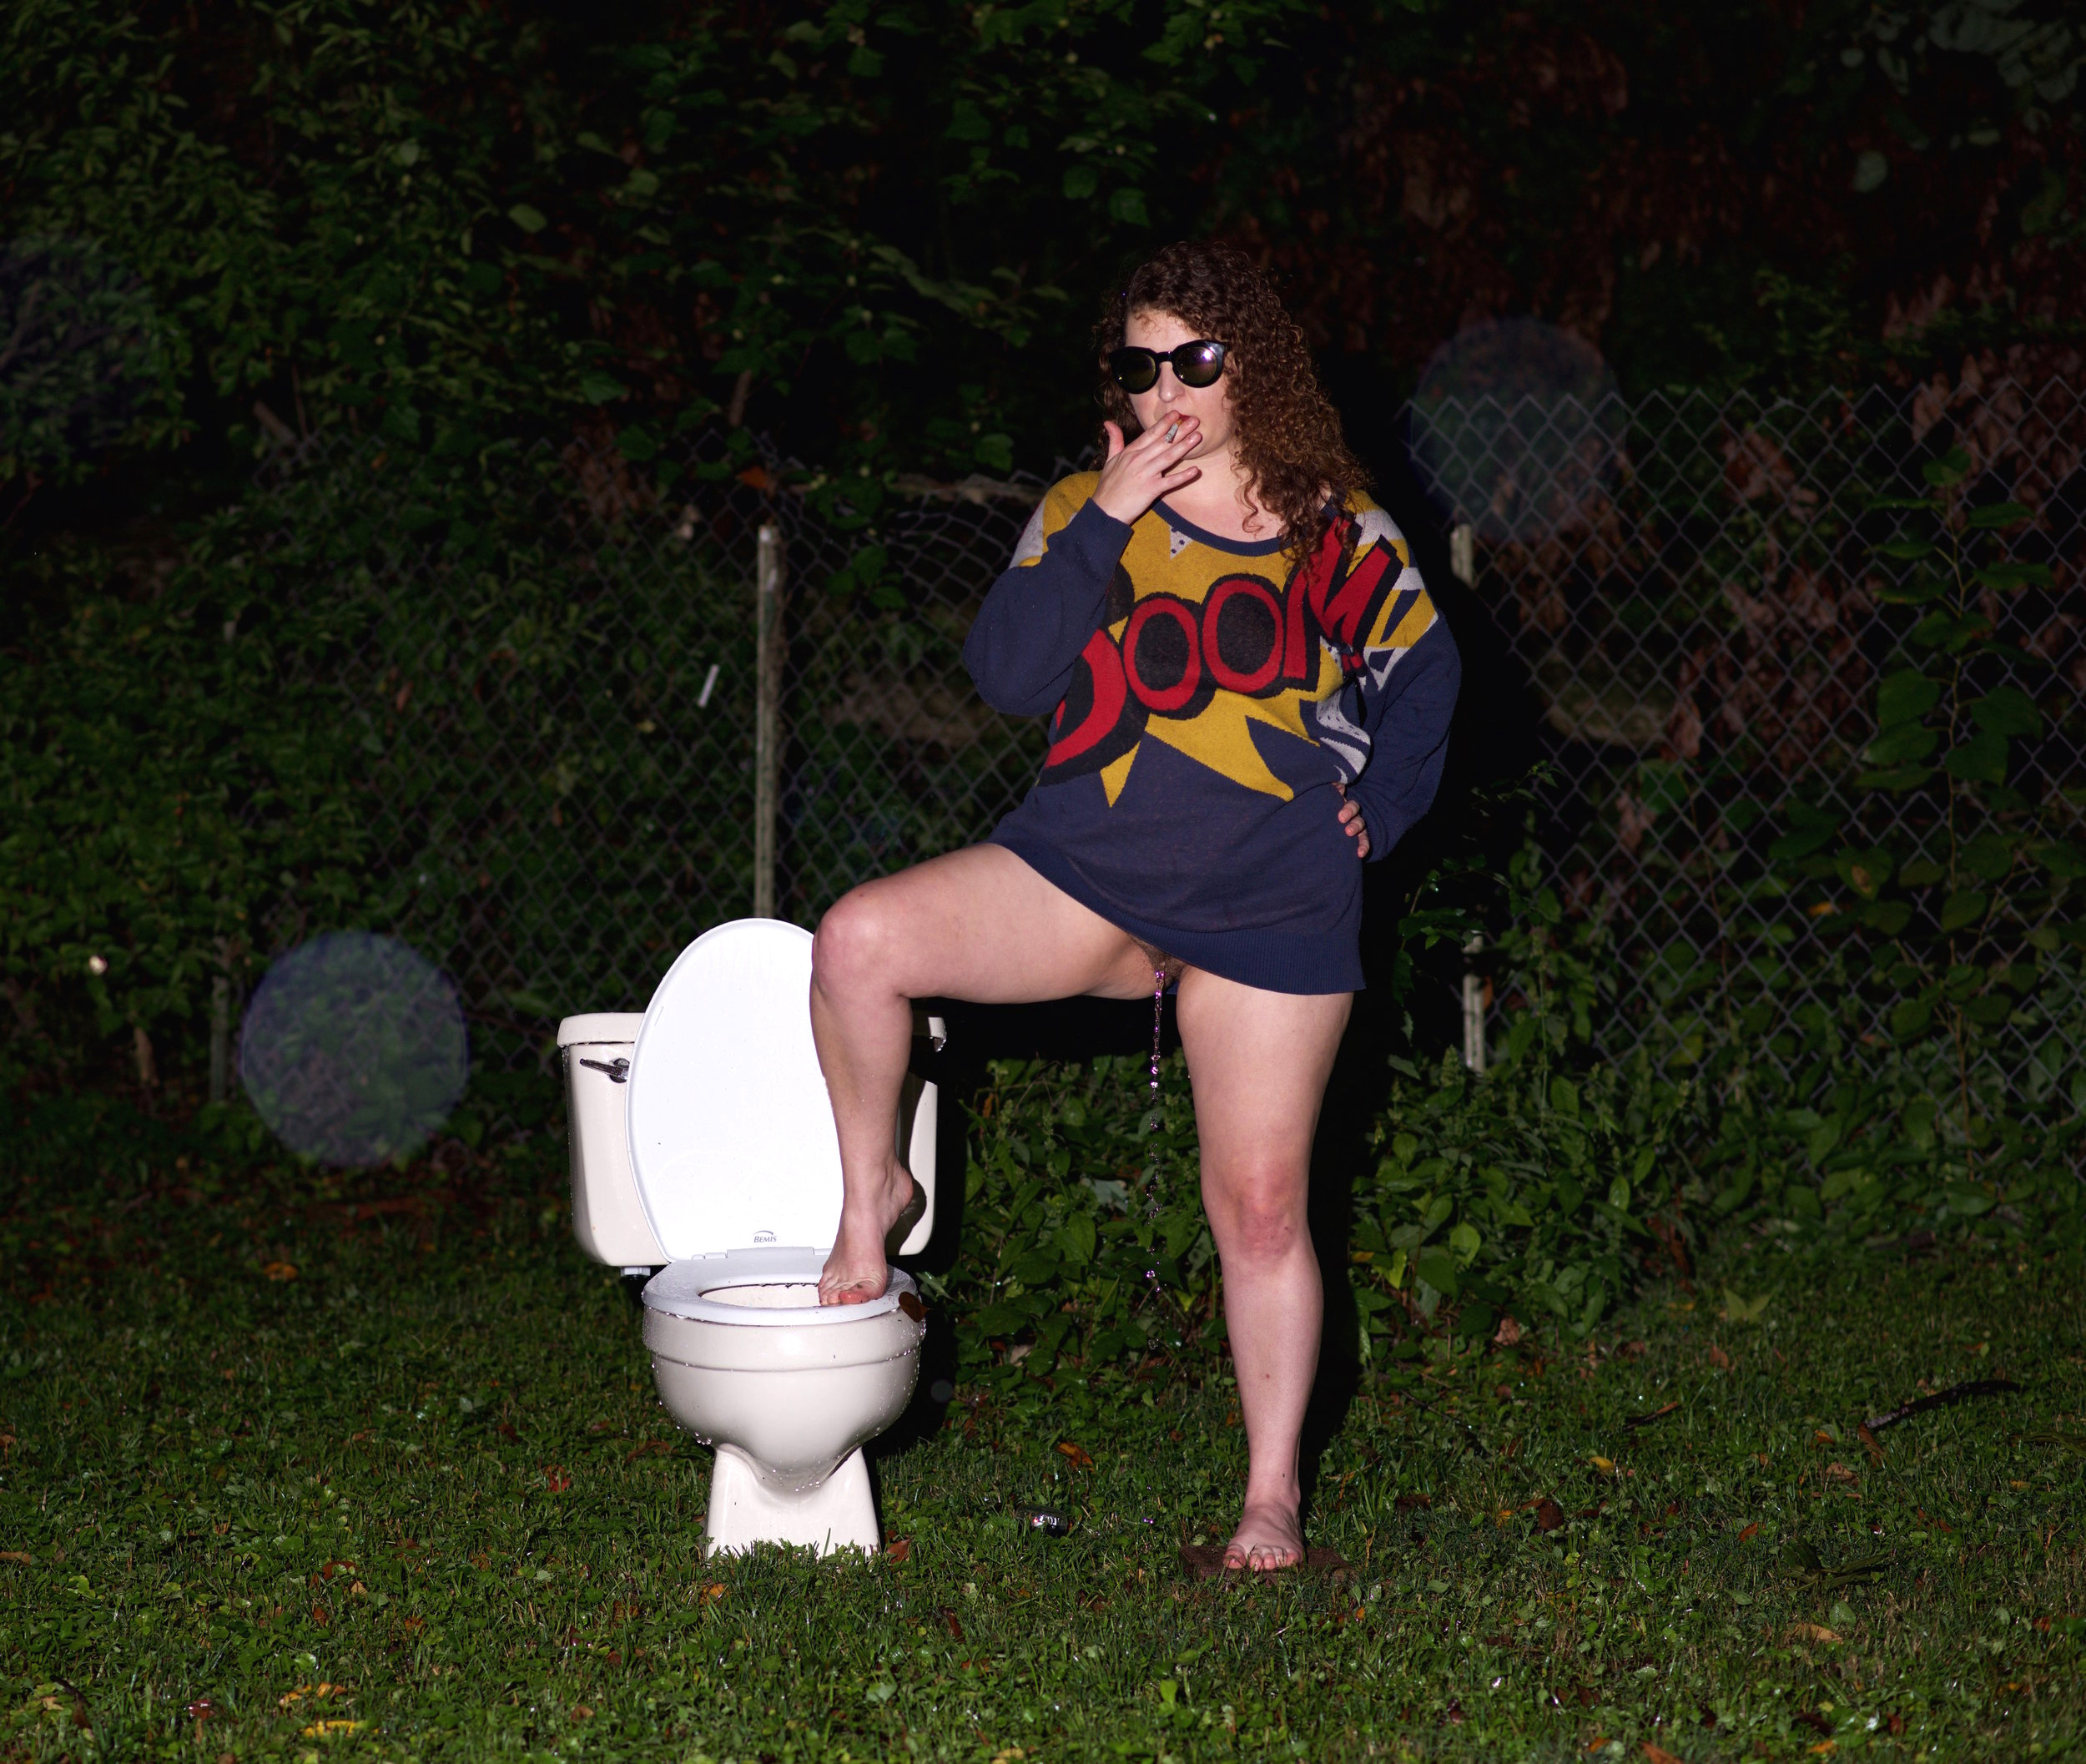 Piss Tennessee